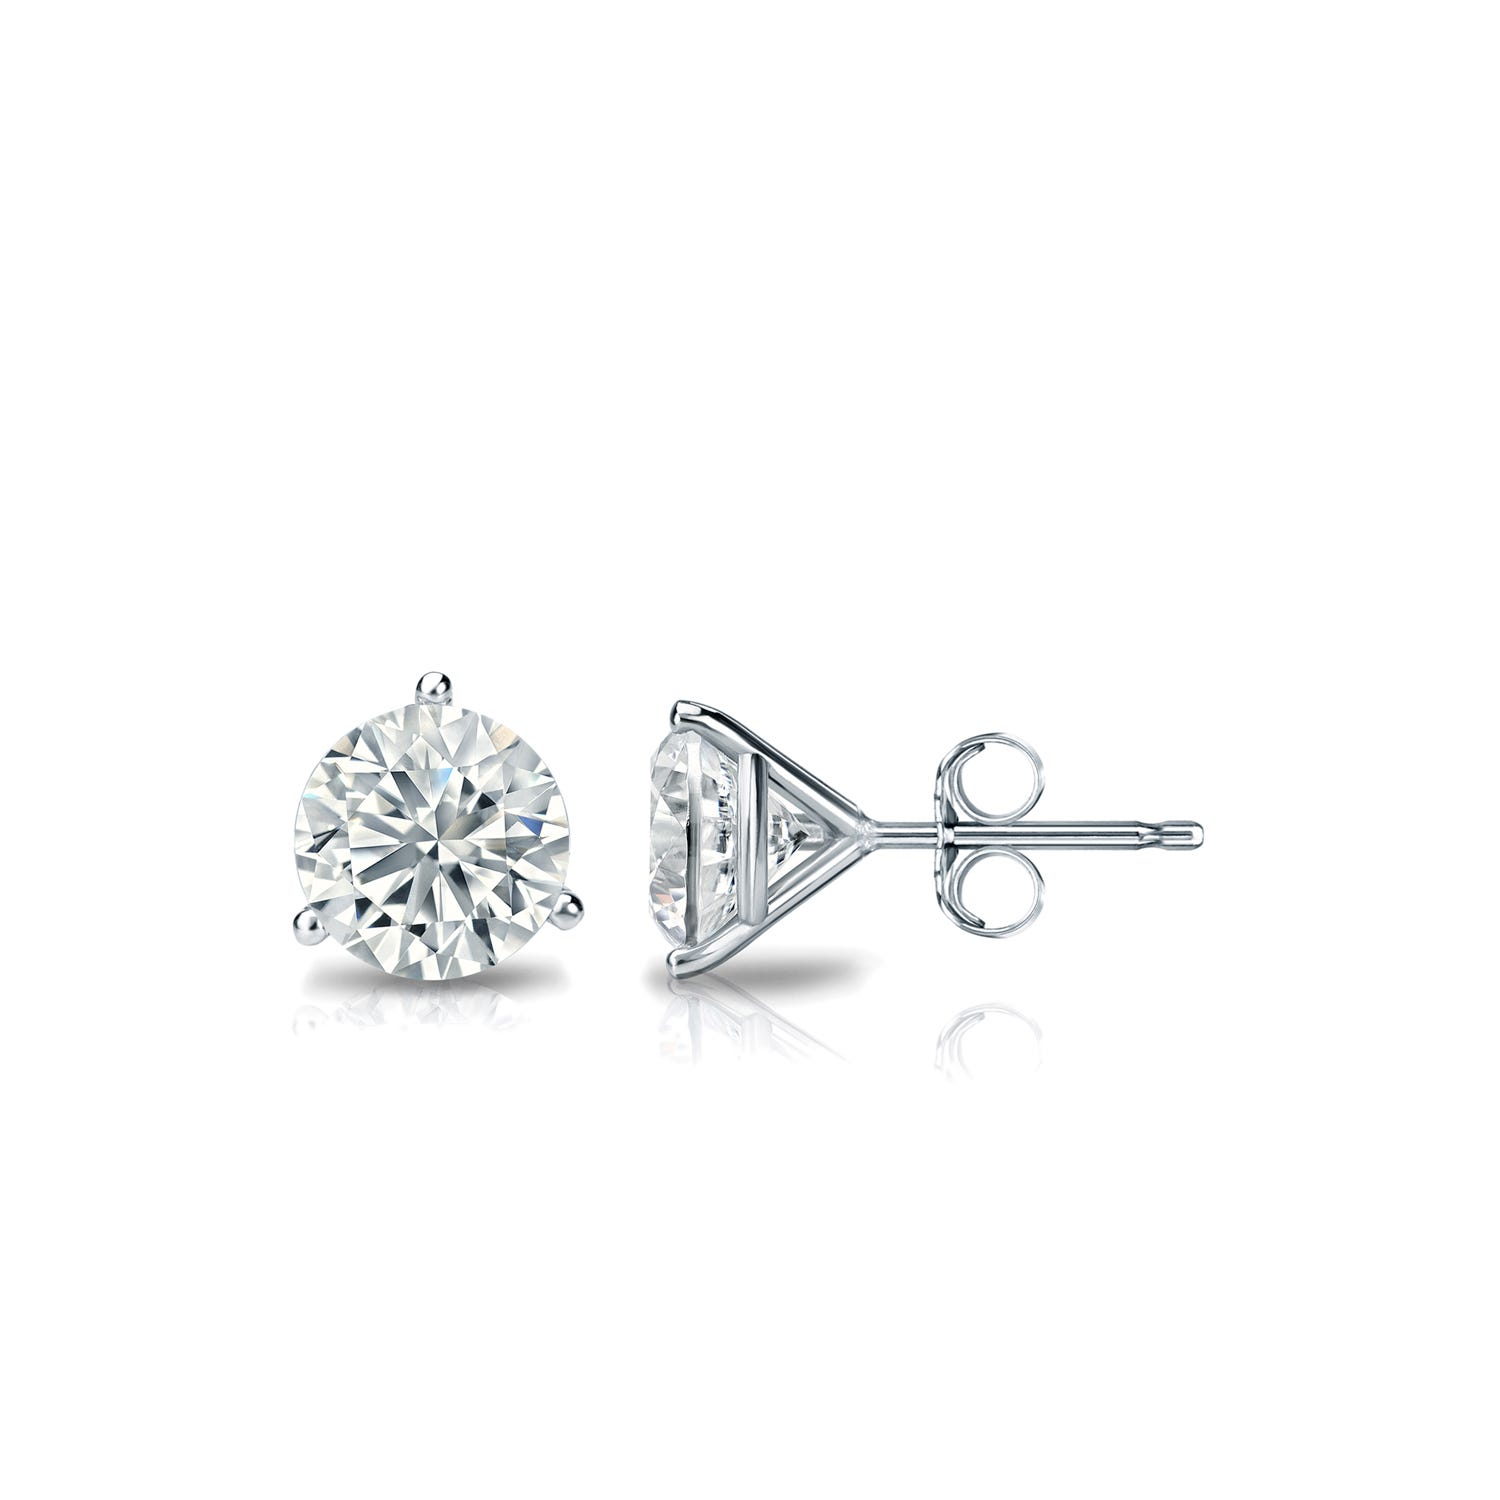 5/8 CTTW Round Diamond Solitaire Stud Earrings IJ I1 in 14K White Gold 3-Prong Setting